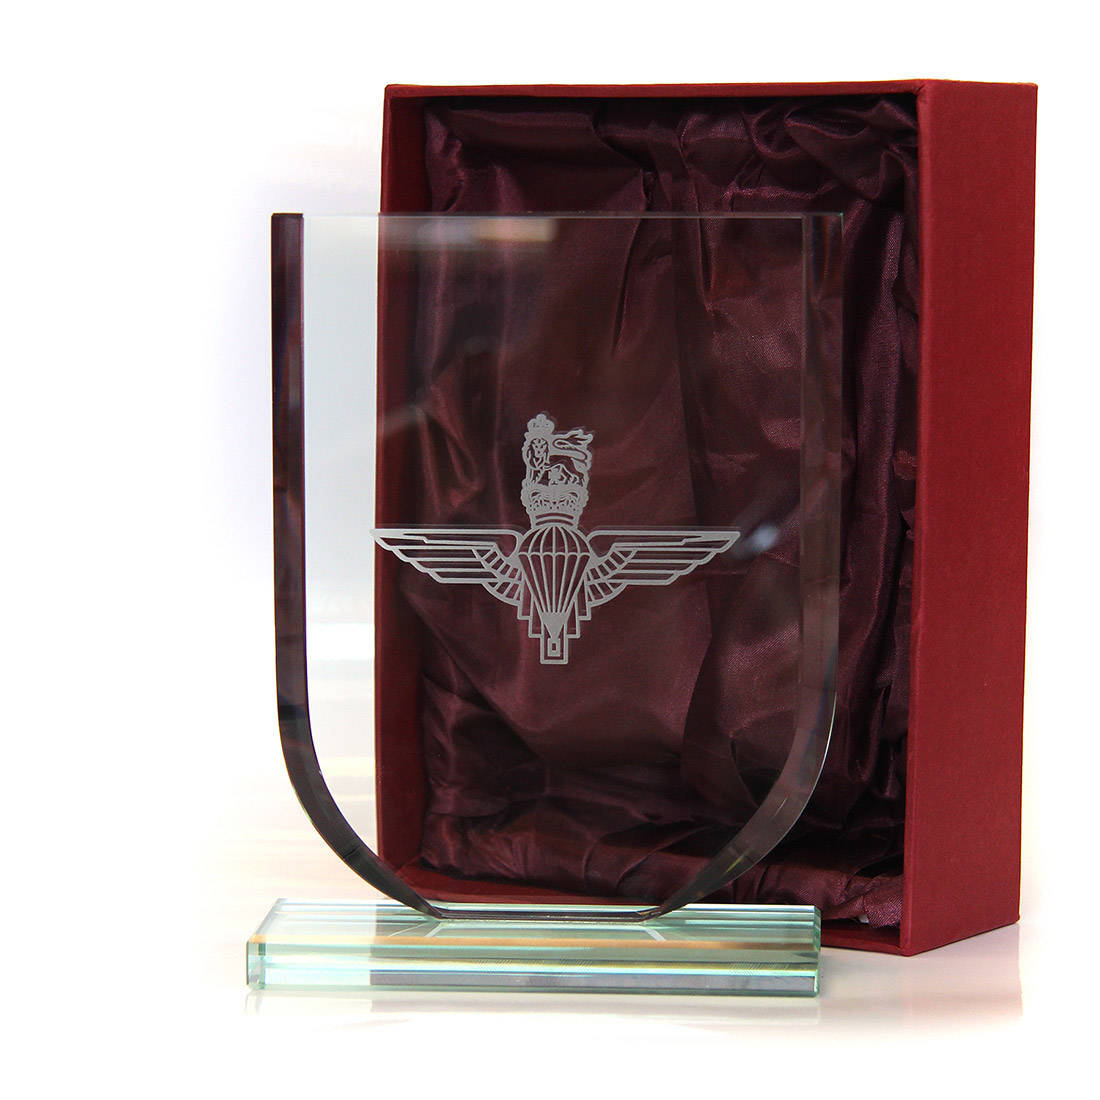 88ad05699819d Crystal Shield (6 inch) - Parachute Regiment - The Airborne Shop